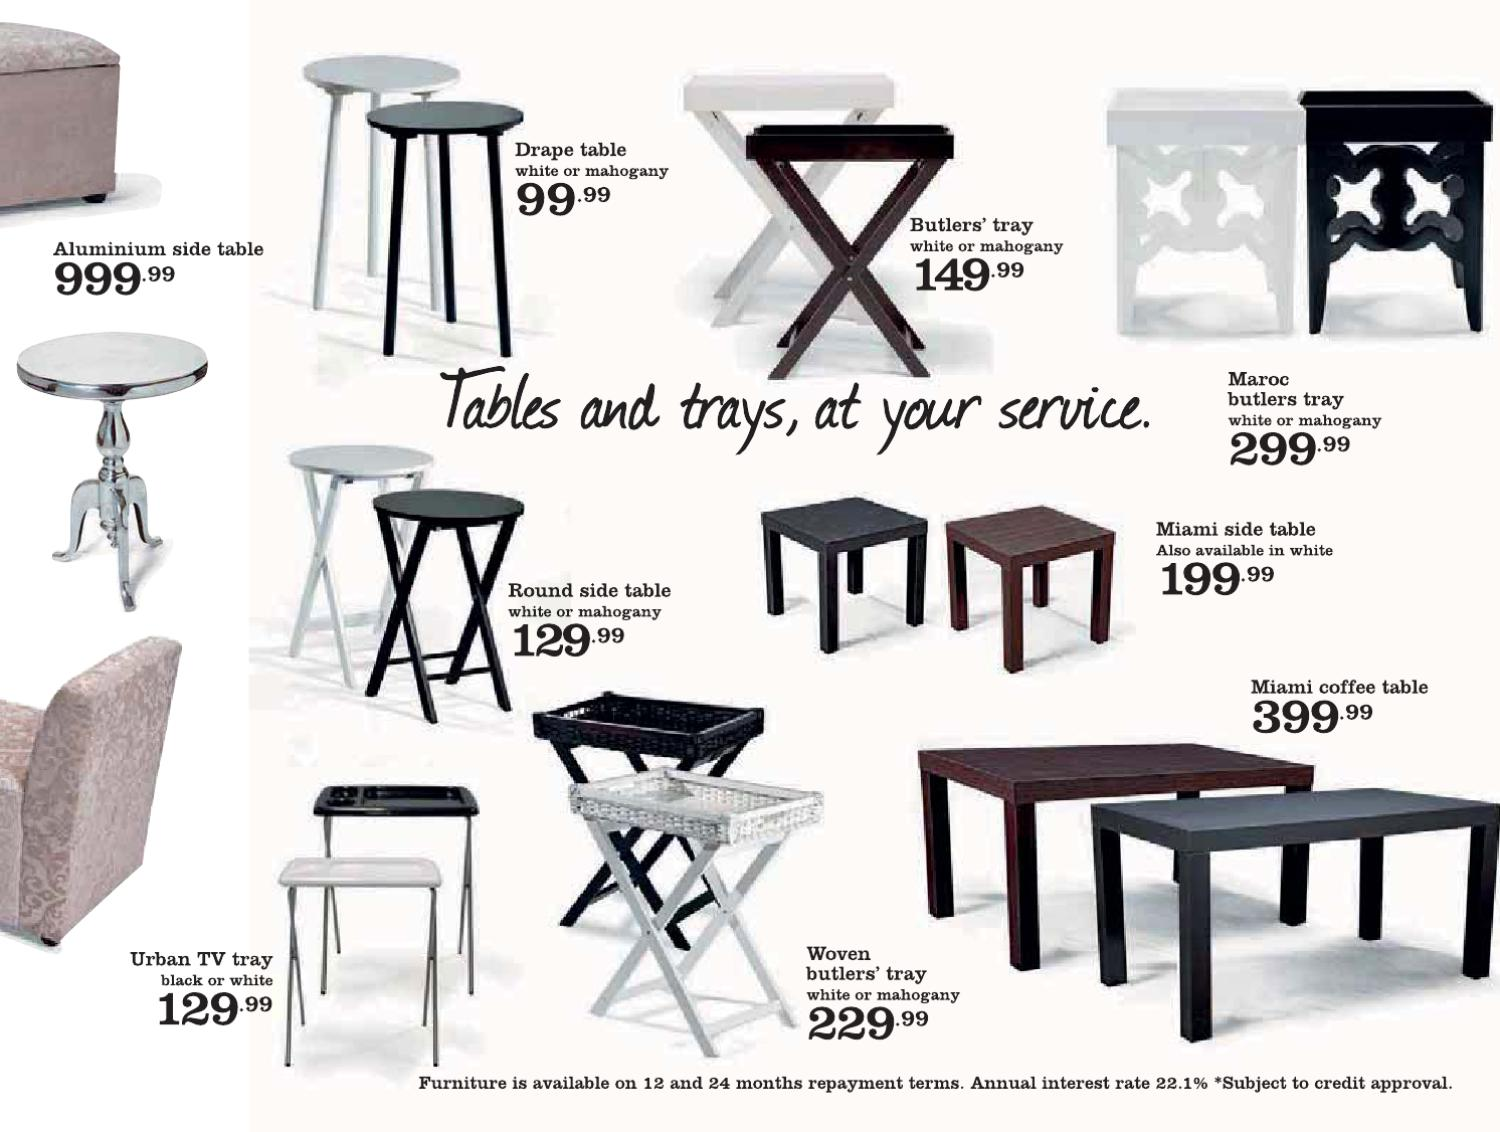 Mr Price Home Furniture Catalogue 2011 by MRPG - issuu